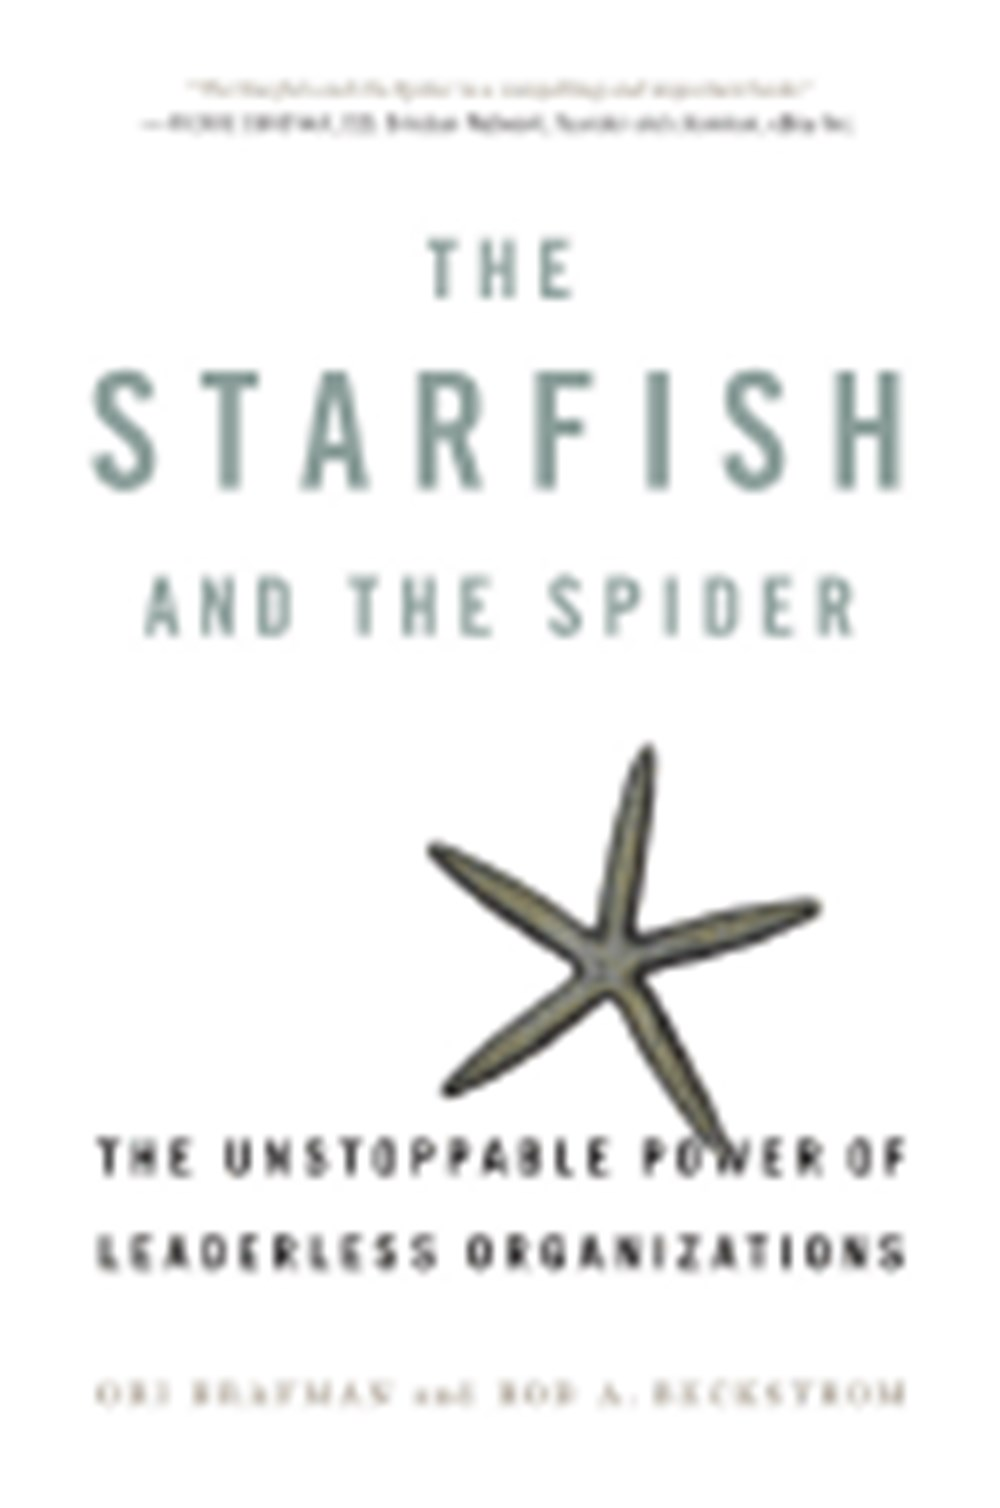 Starfish and the Spider The Unstoppable Power of Leaderless Organizations